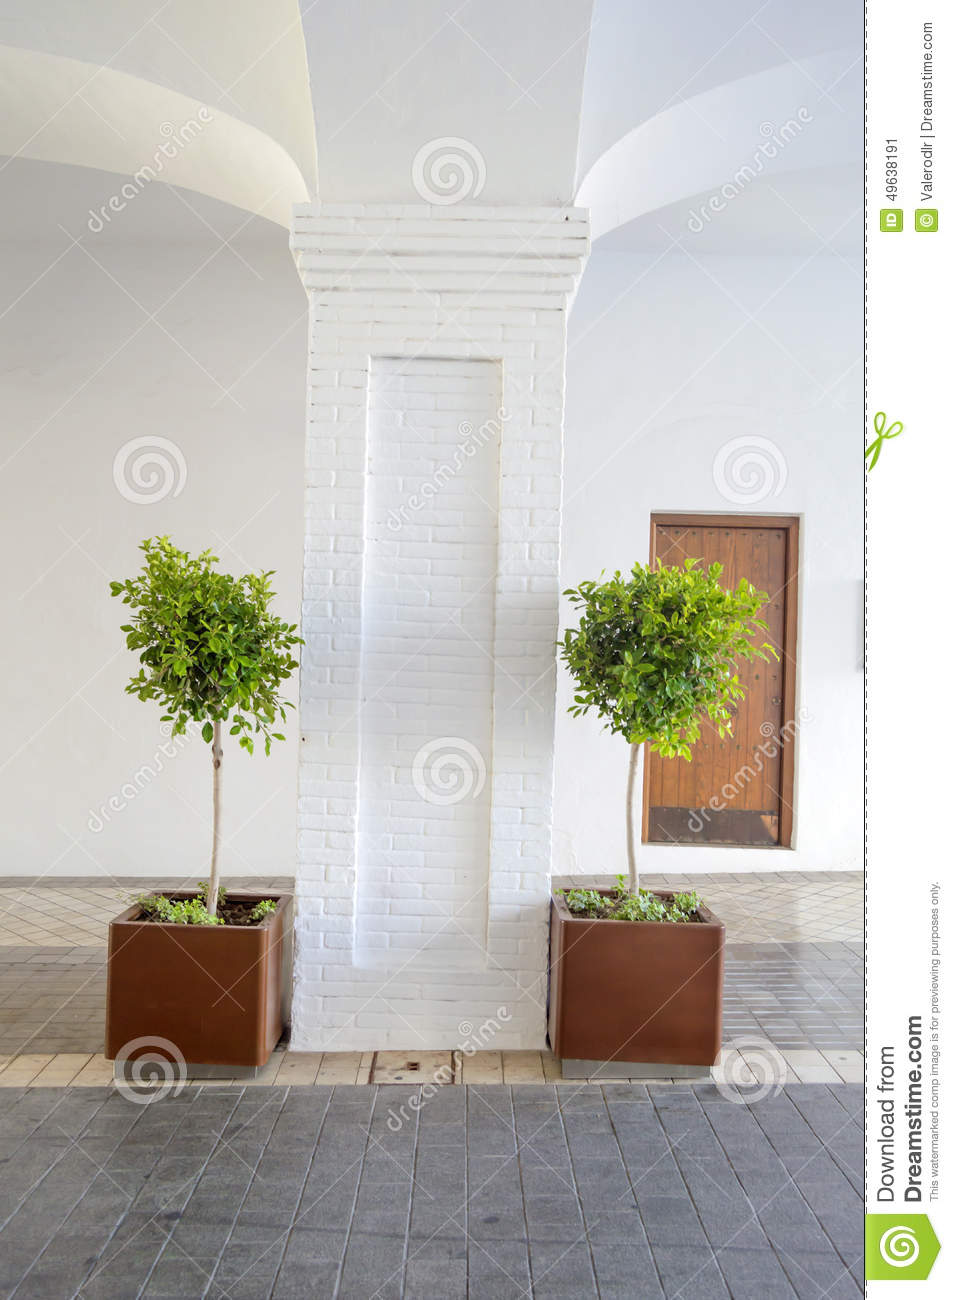 Small Potted Trees Outside Patio